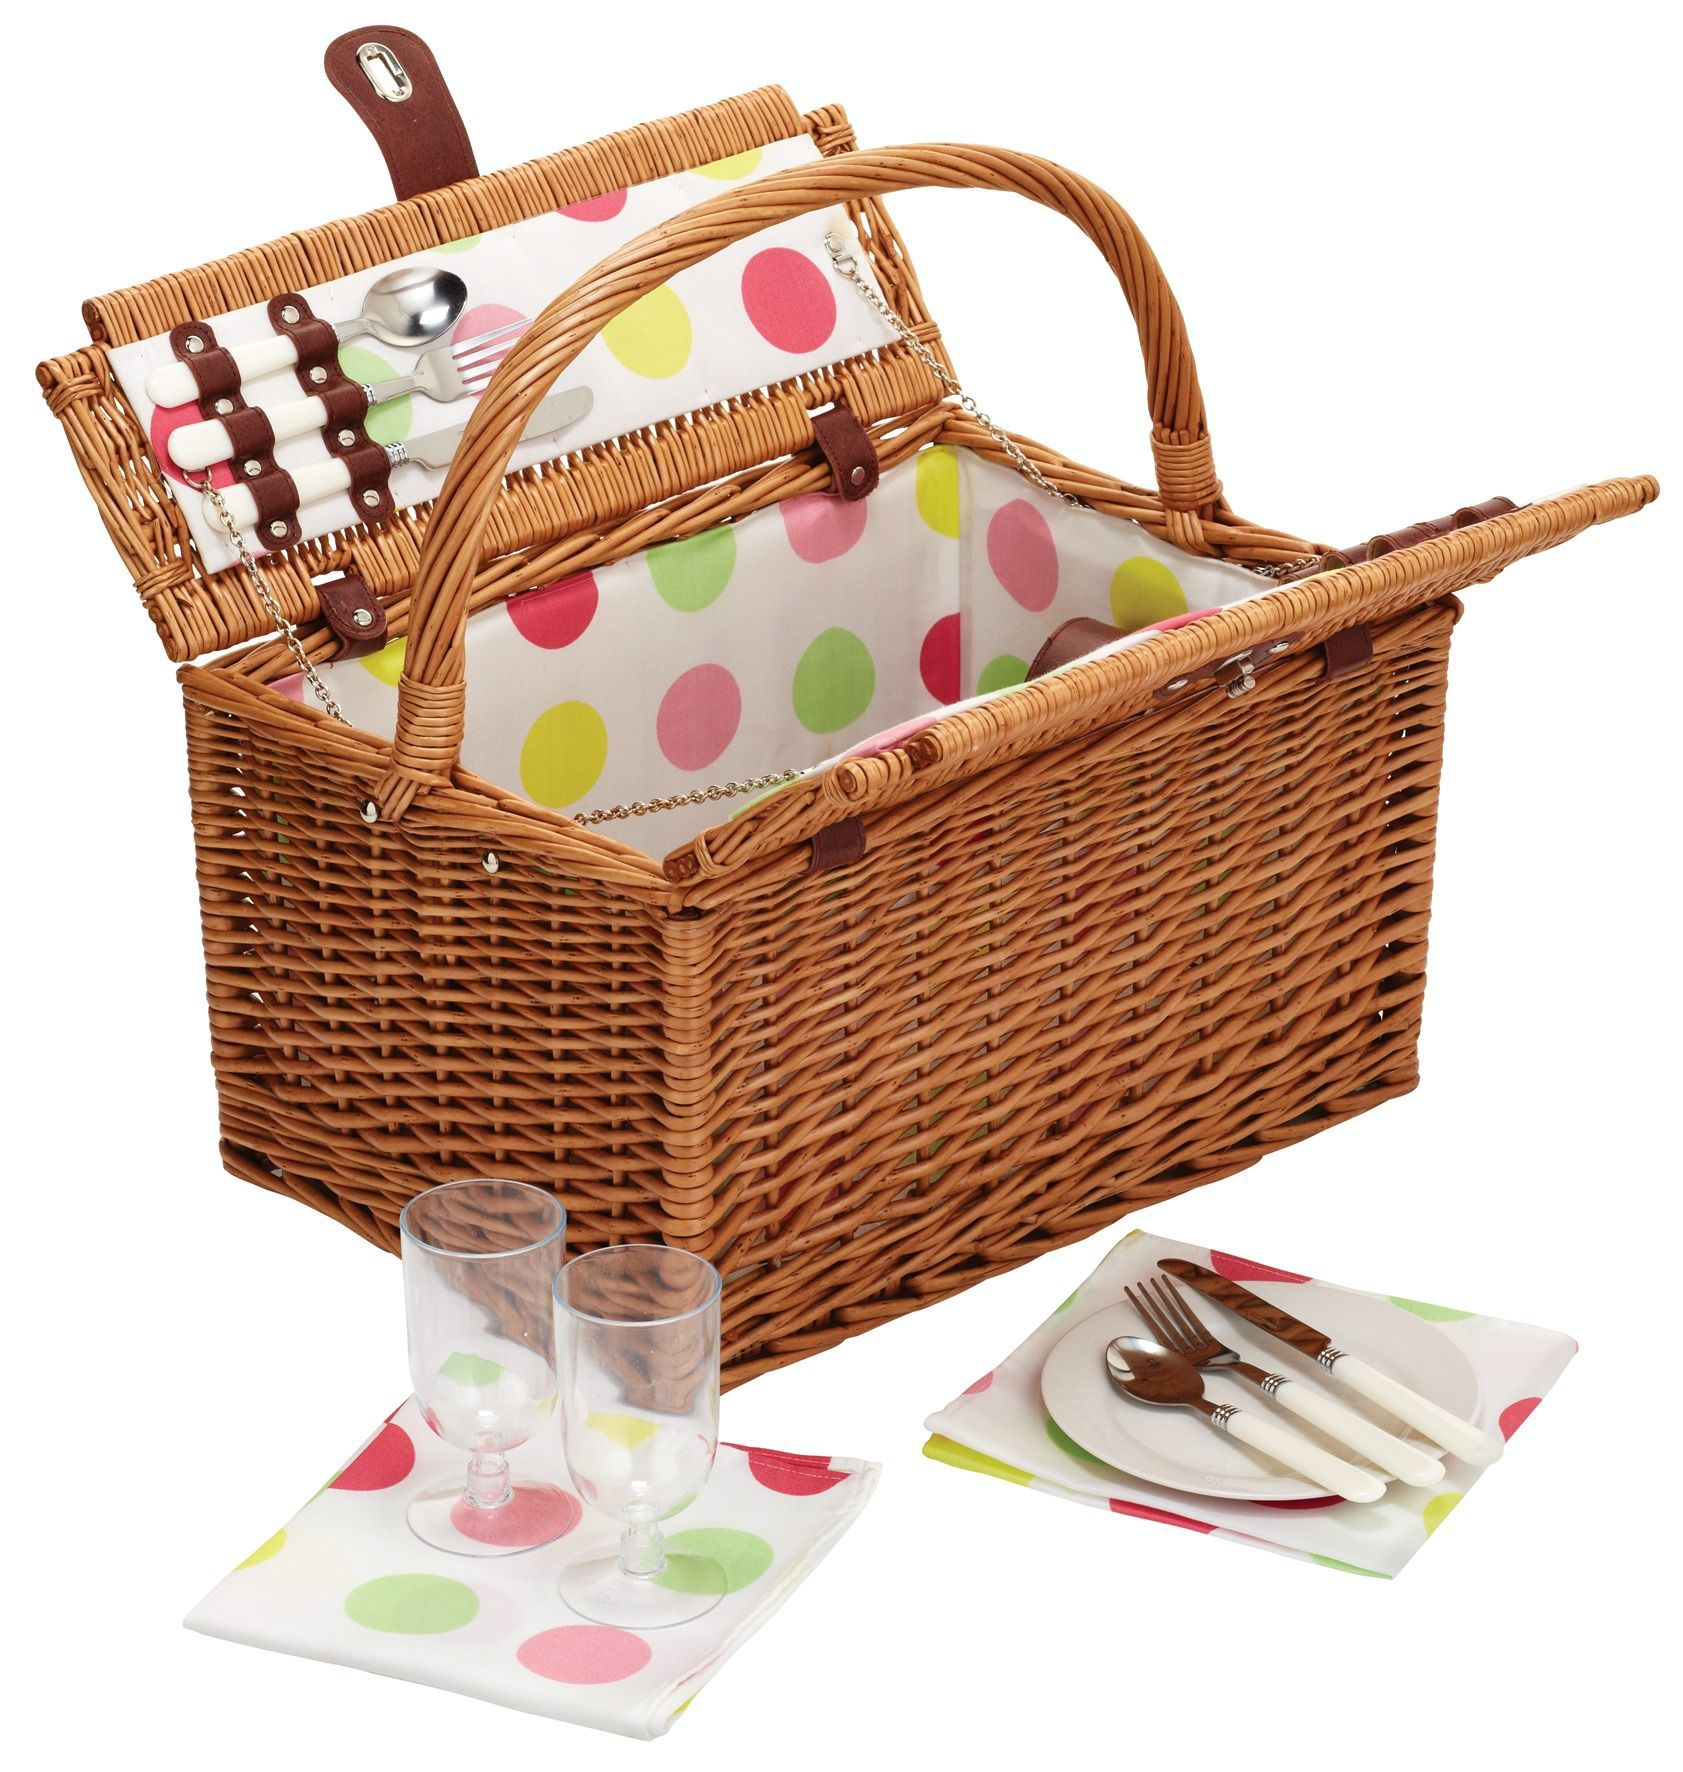 Sherbet 2 person picnic hamper